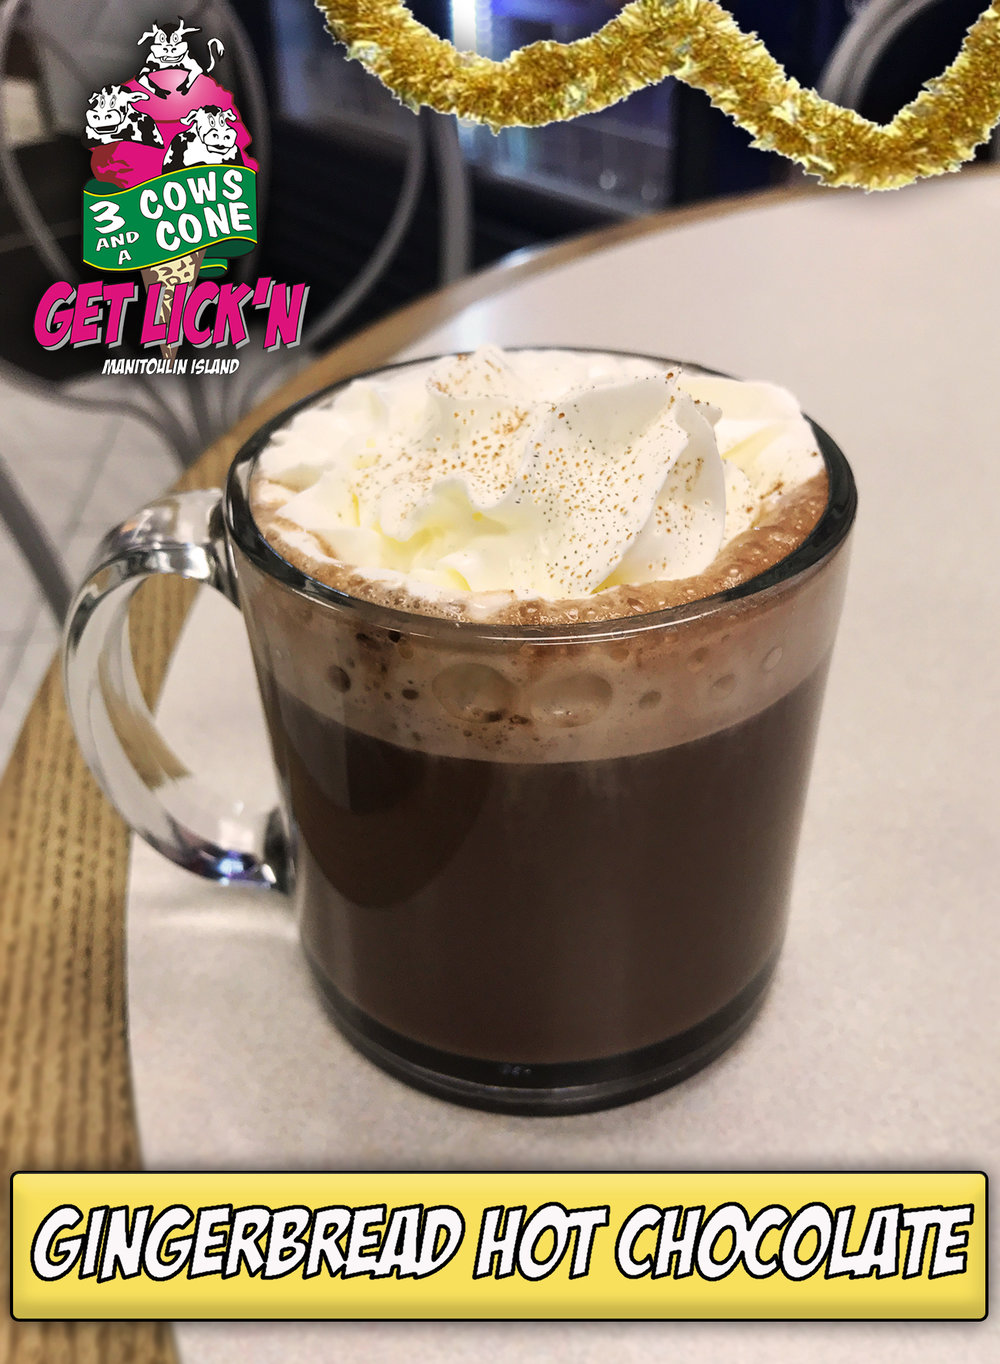 gingerbread hot choc.jpg